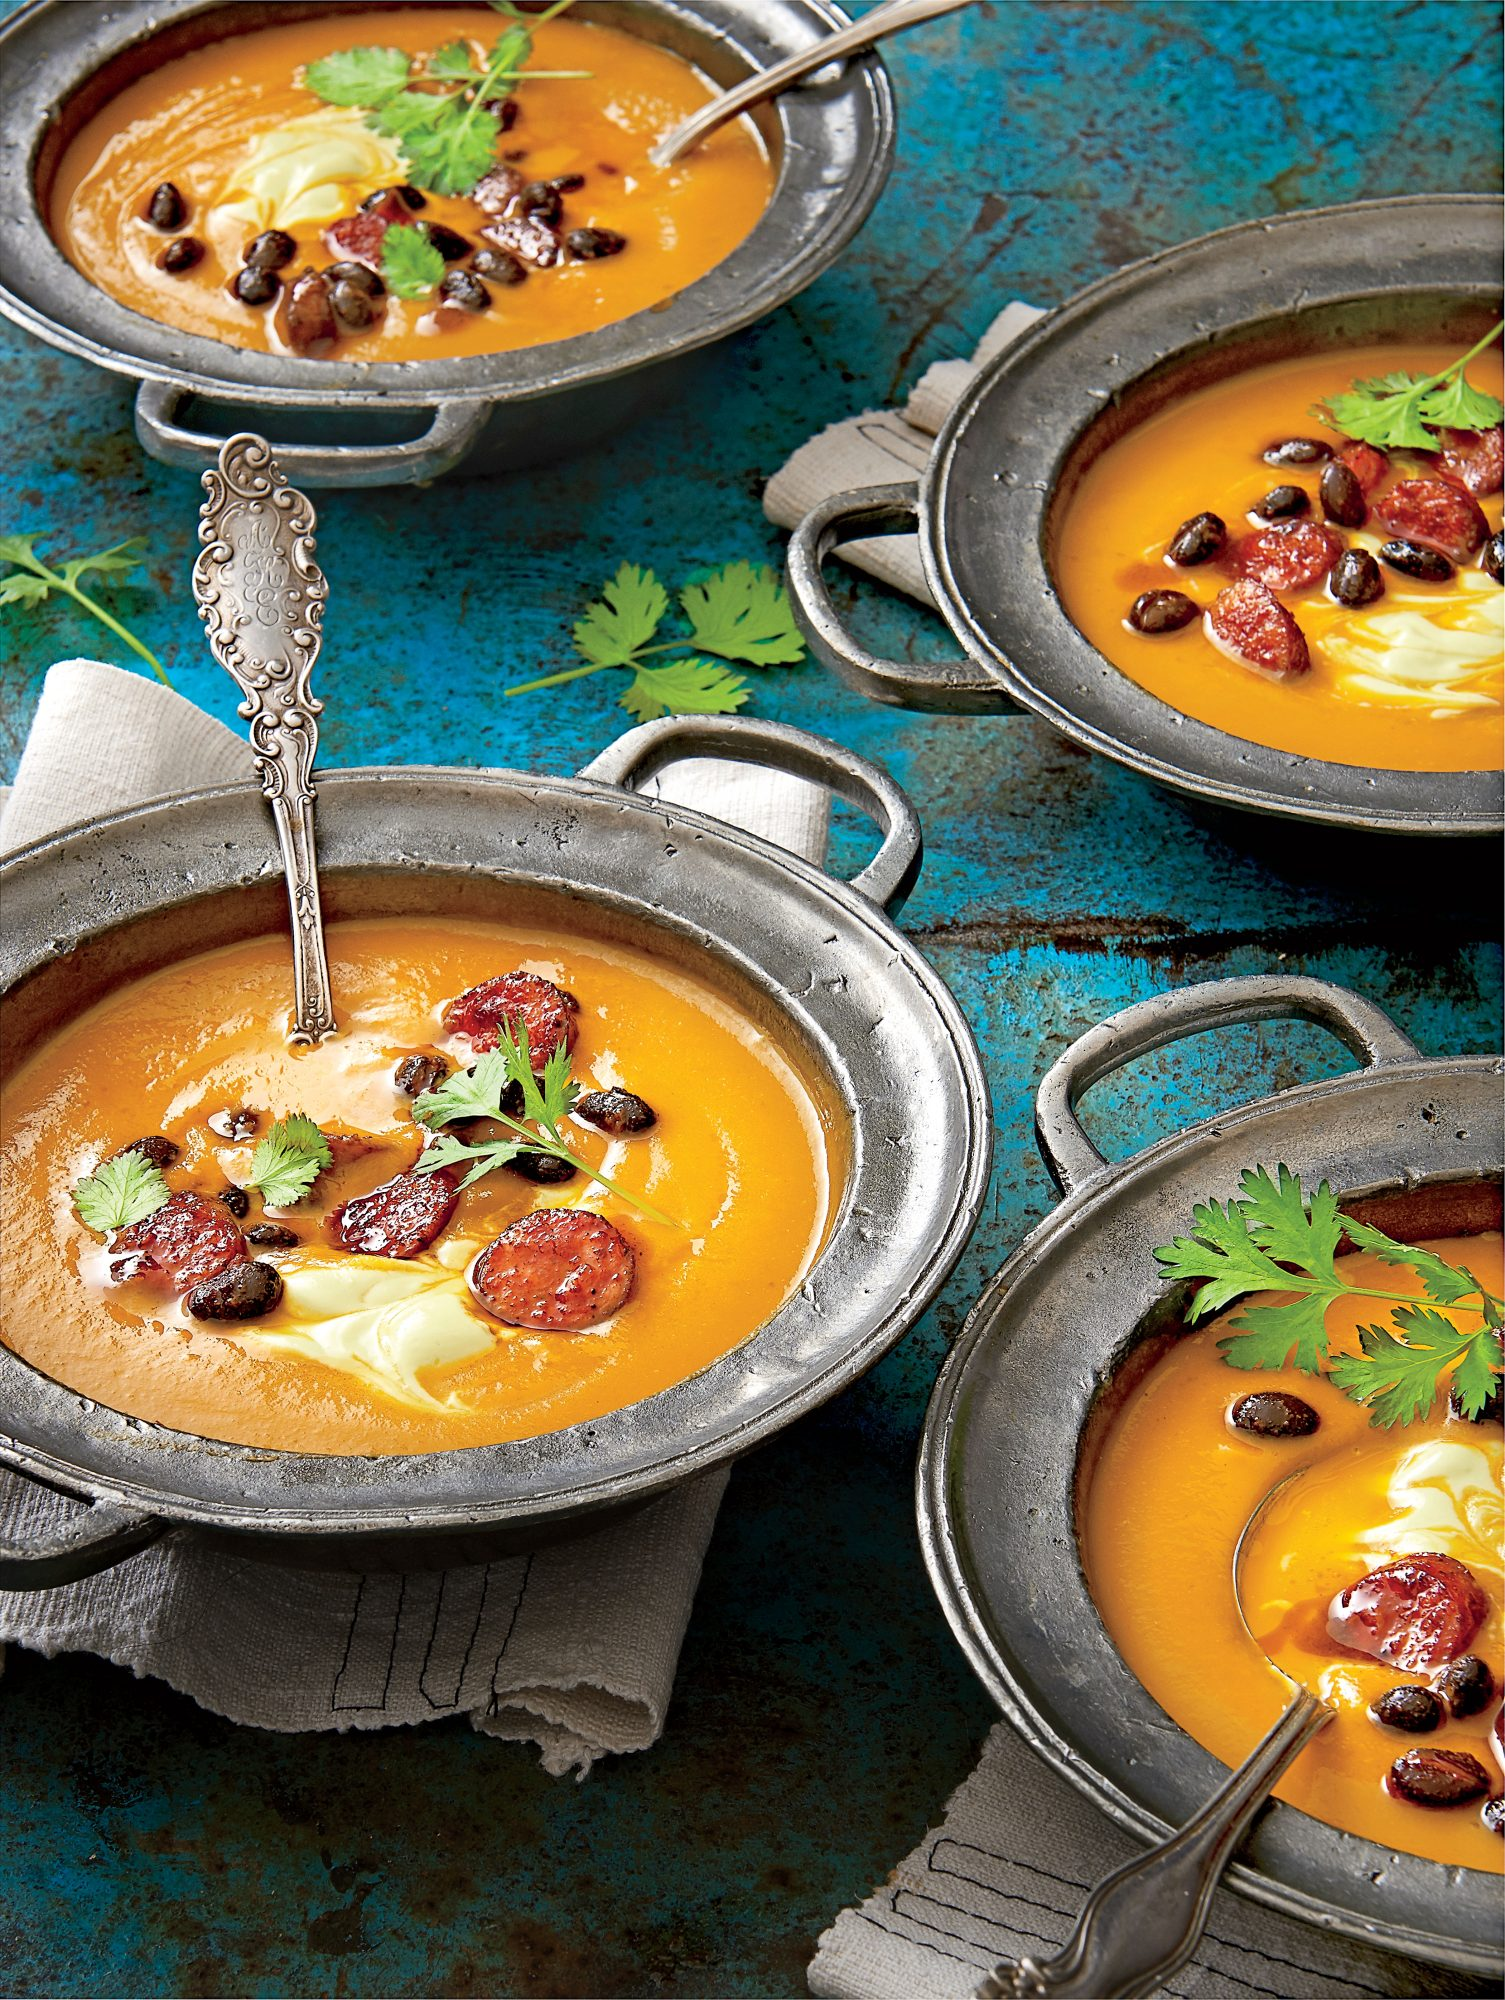 Spicy Pumpkin Soup with Avocado Cream